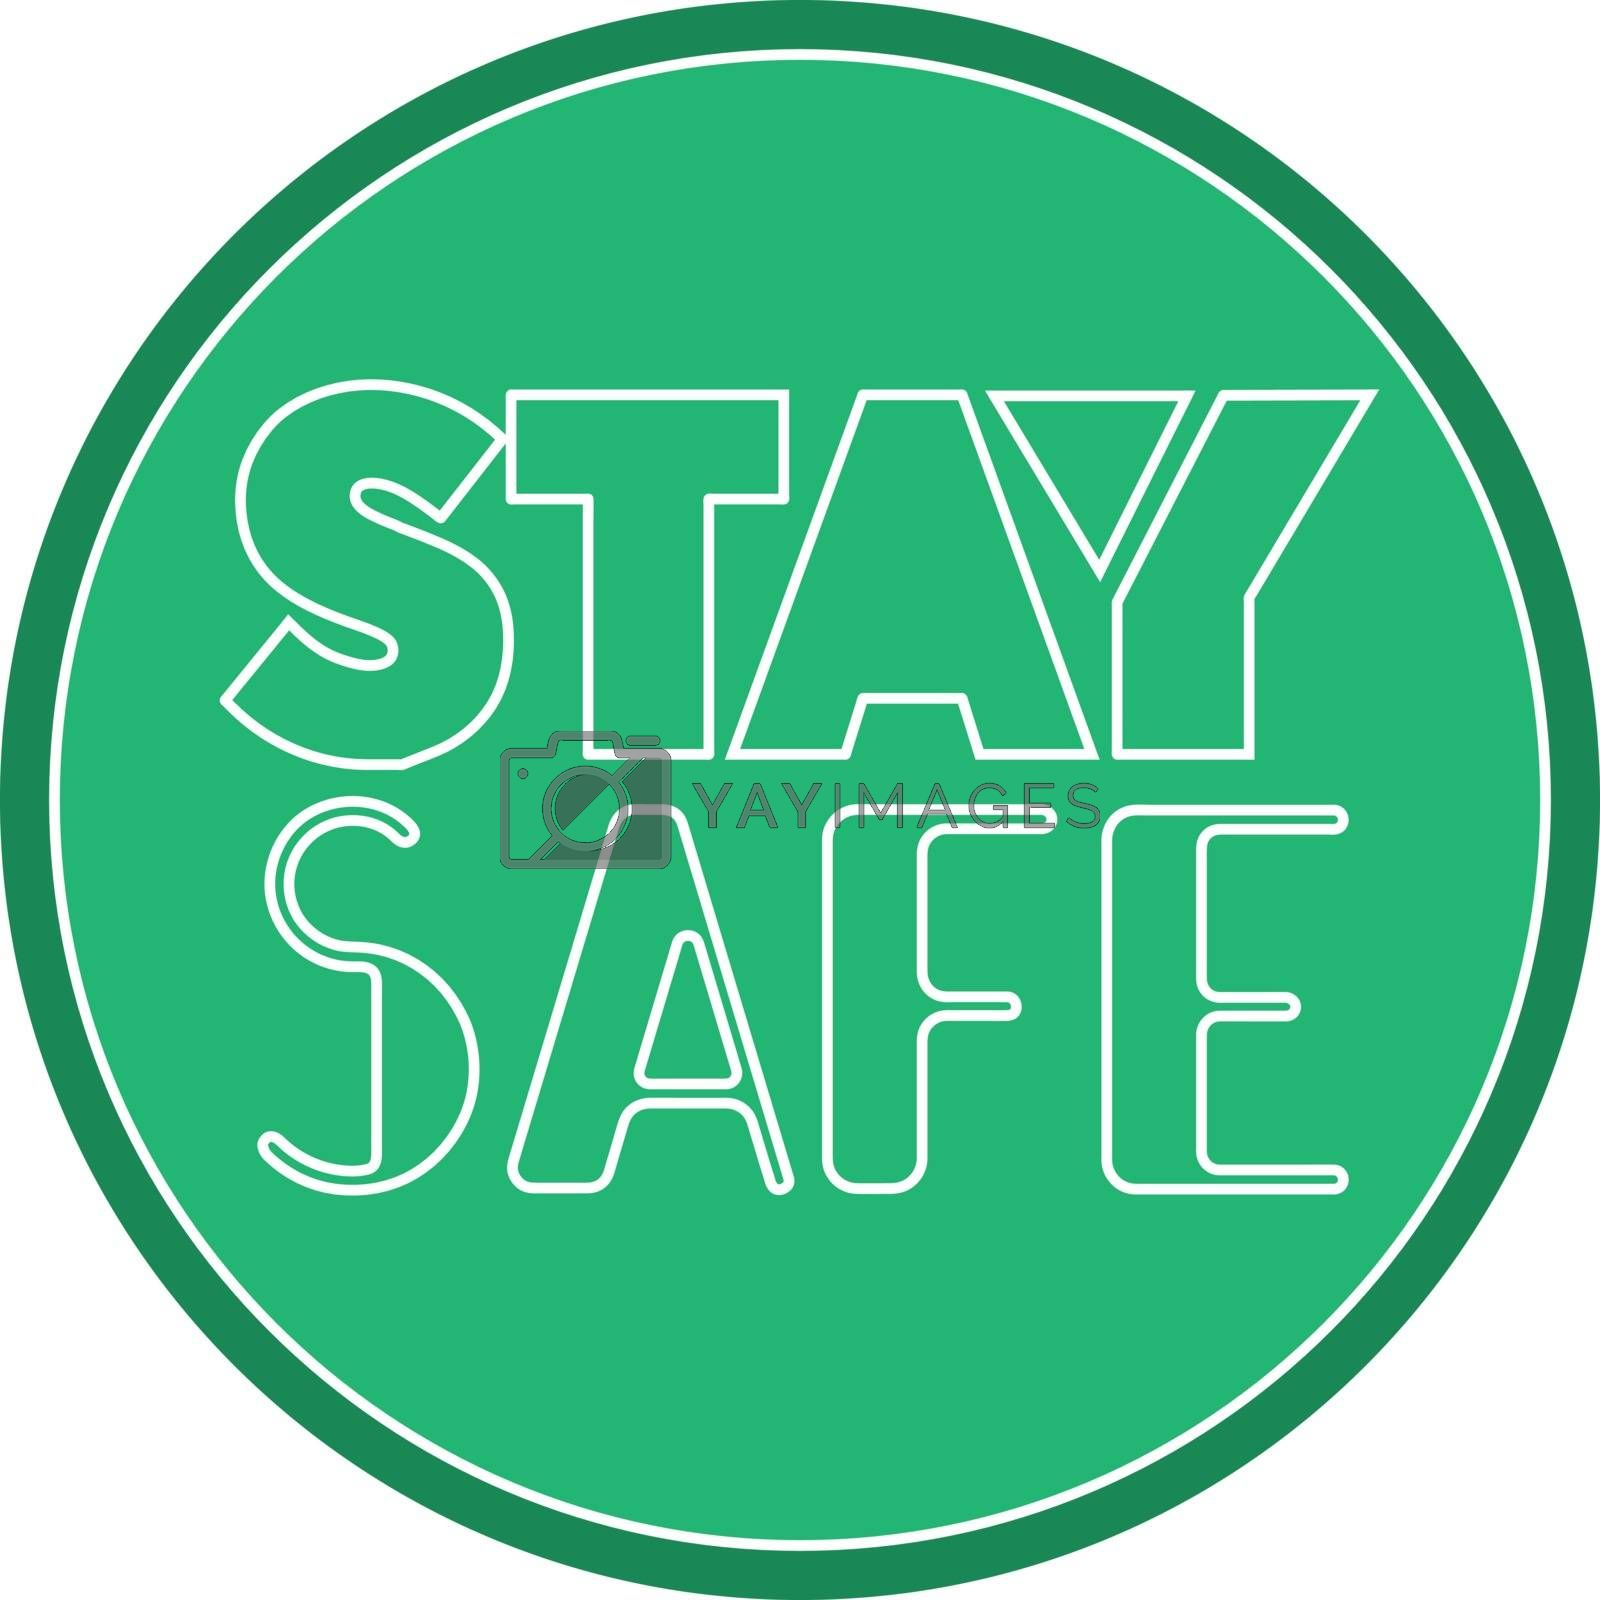 Simple green circle sign or icon with white contour text 'stay safe'